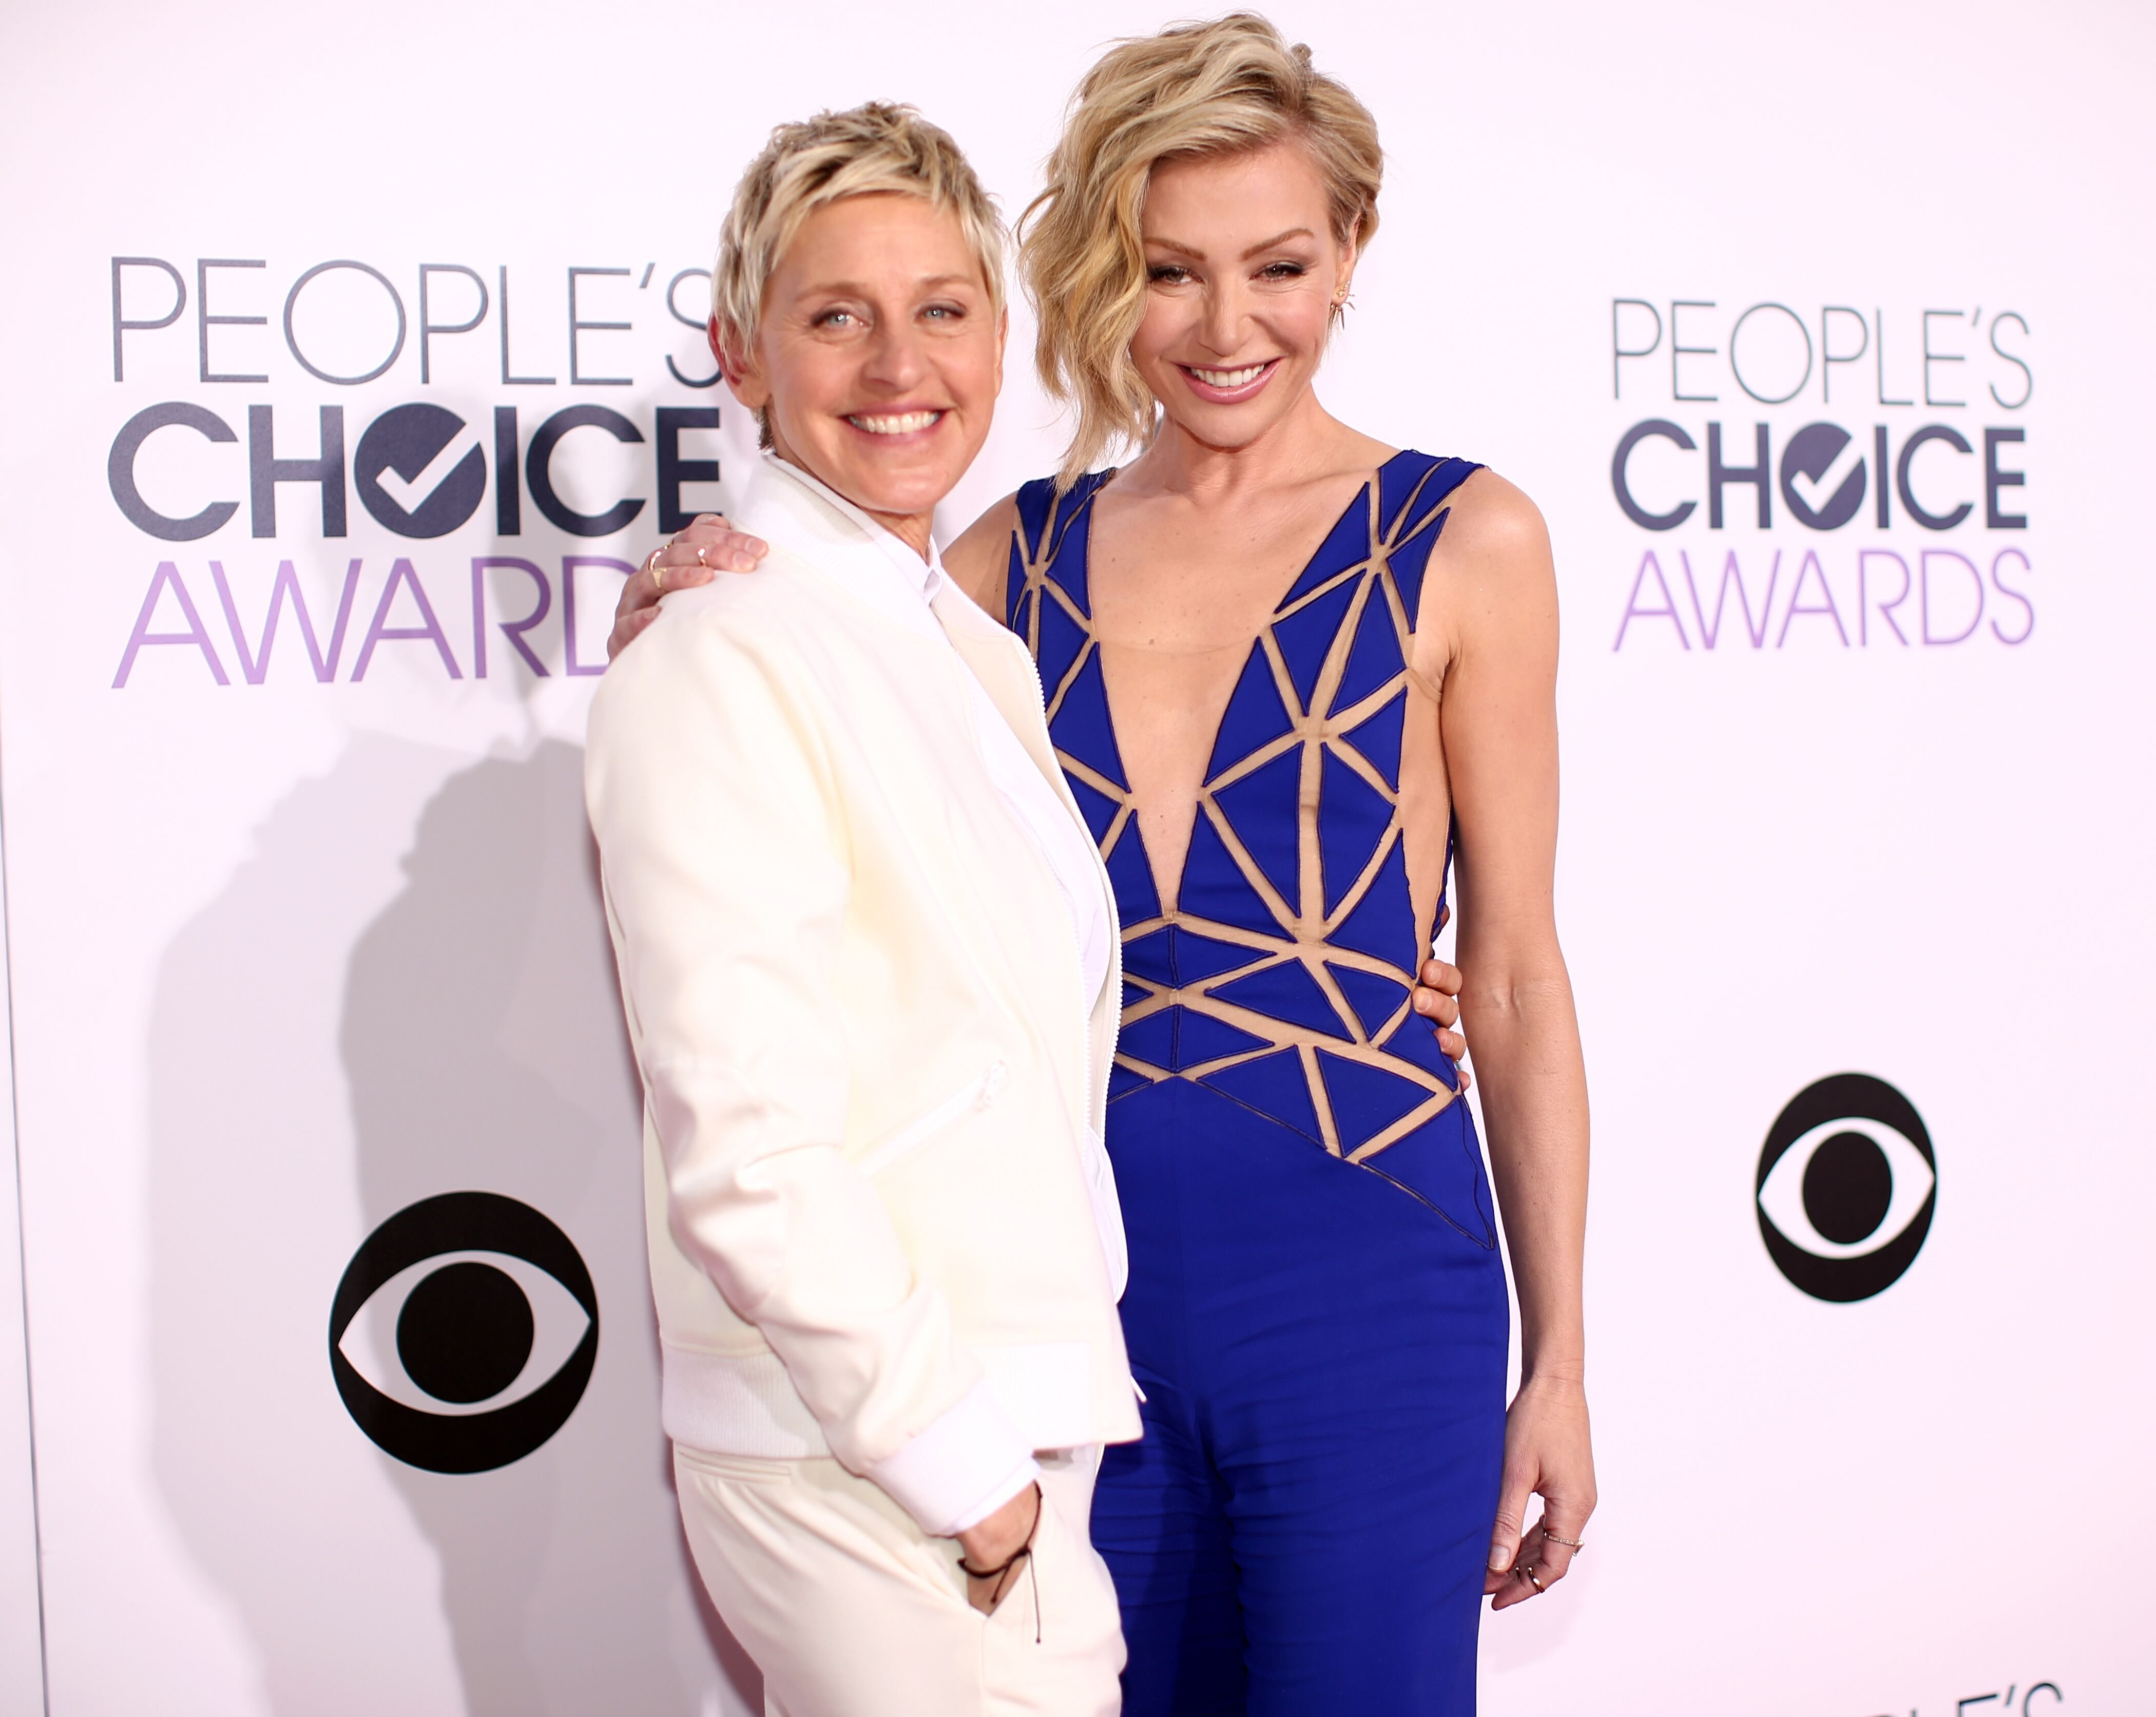 Ellen DeGeneres and actress Portia de Rossi attend The 41st Annual People's Choice Awards. | Source: Getty Images